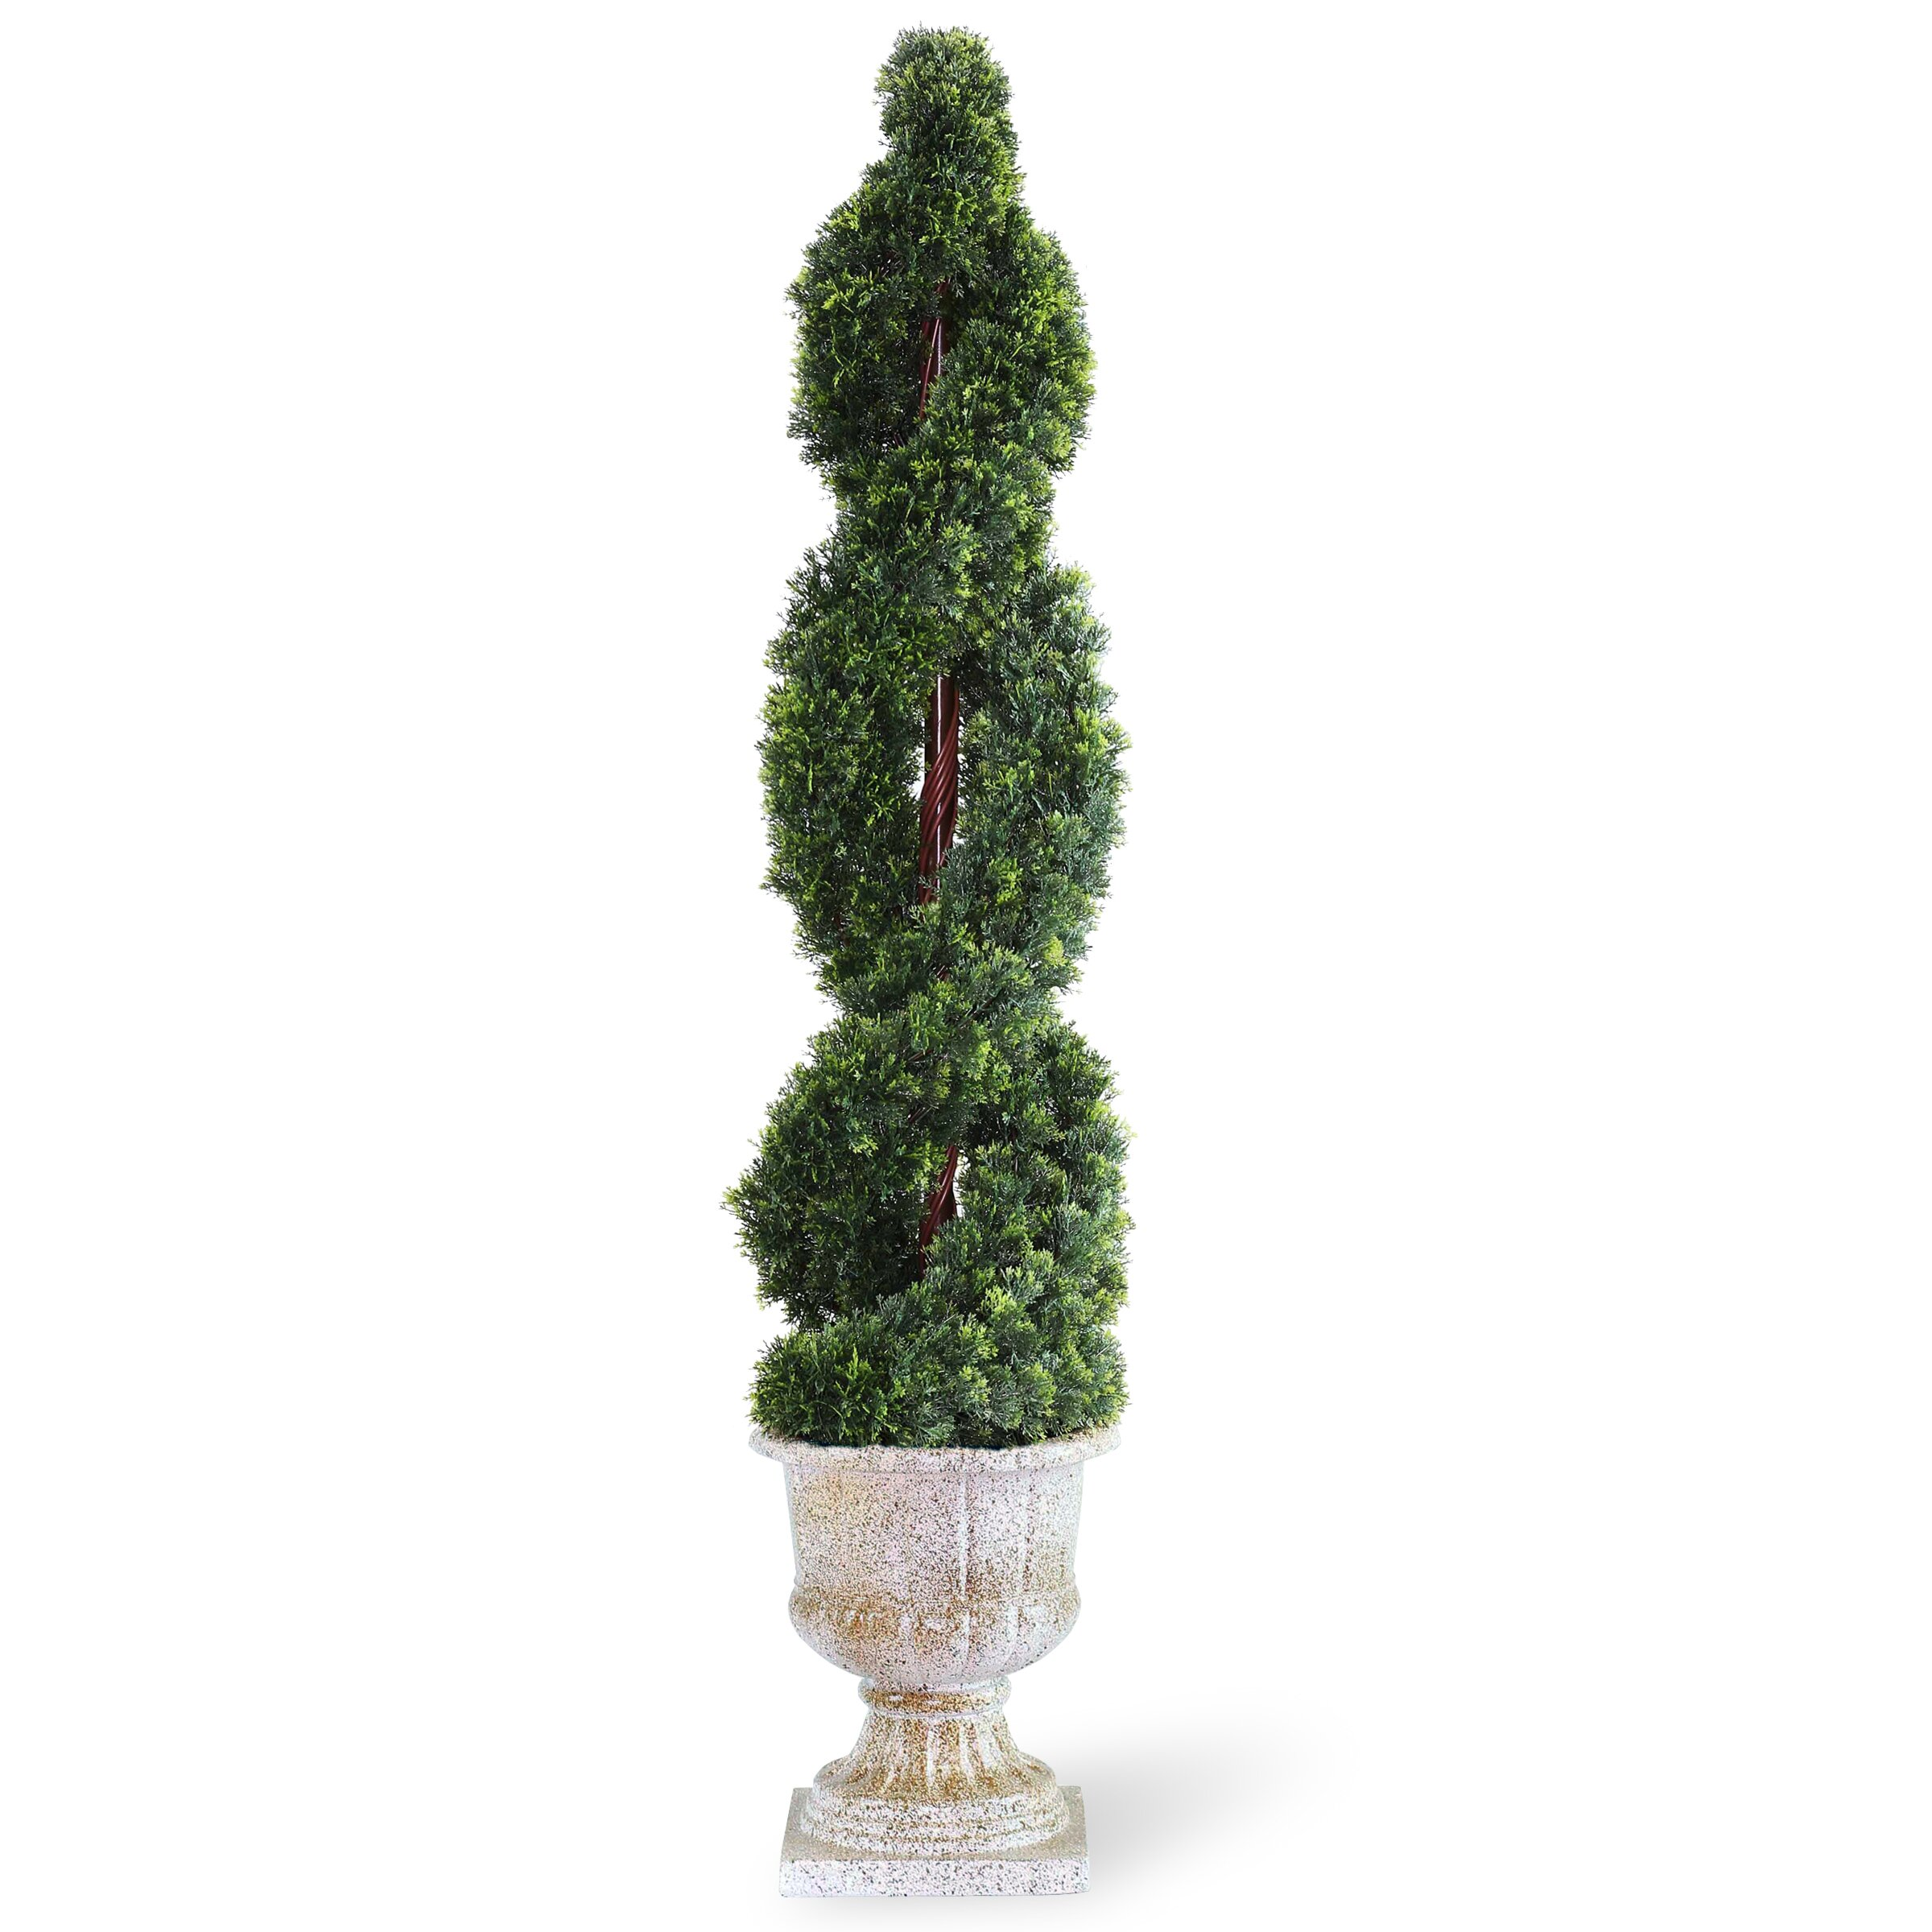 Topiary Spiral Trees: National Tree Co. Double Cedar Spiral Topiary In Urn